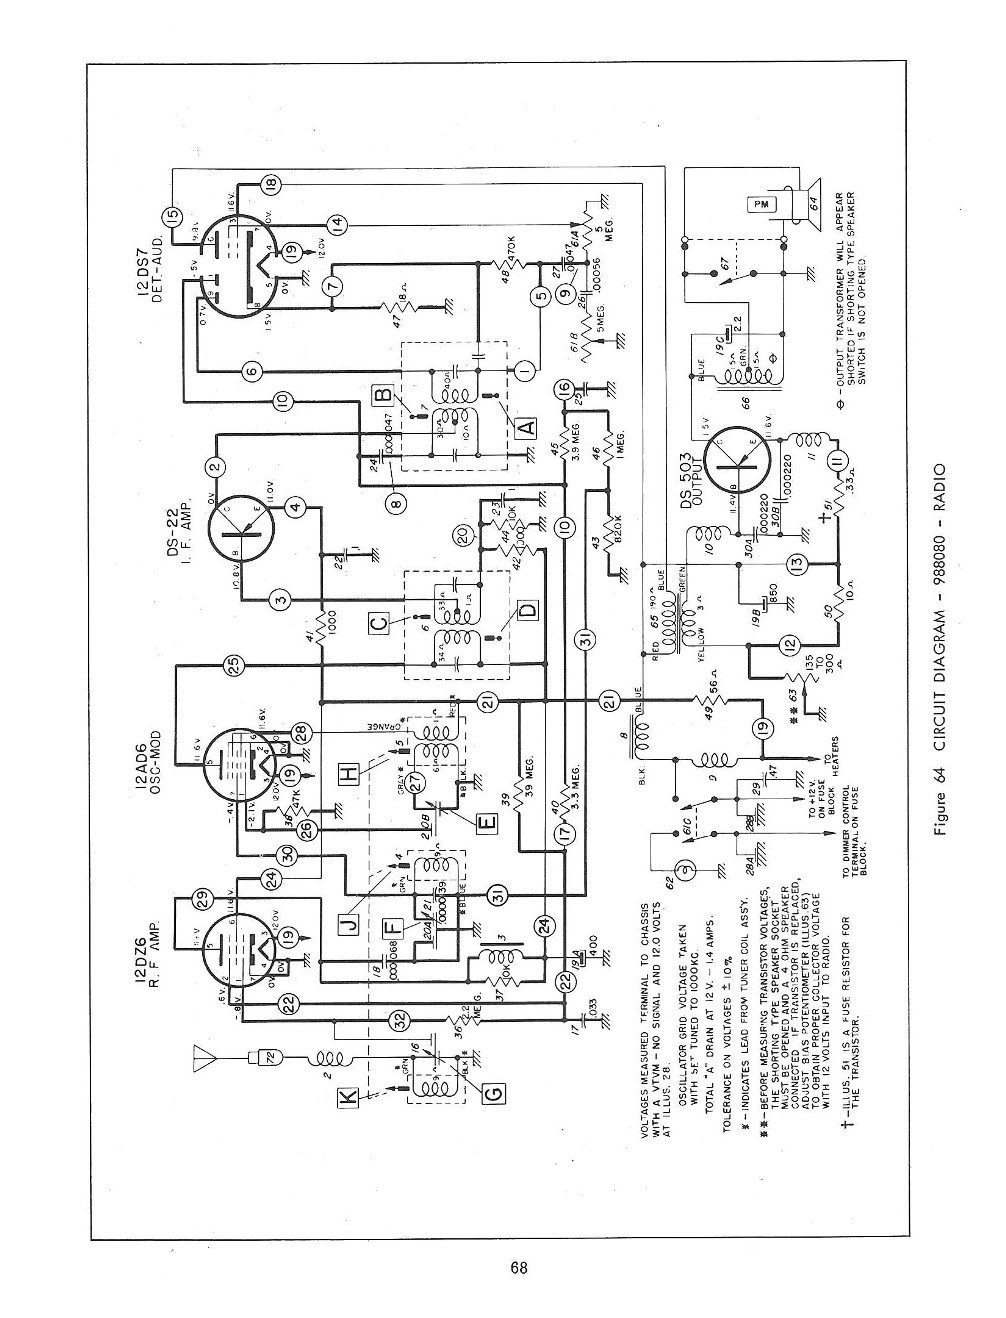 1960 Chevrolet Radio Service and Shop Manual